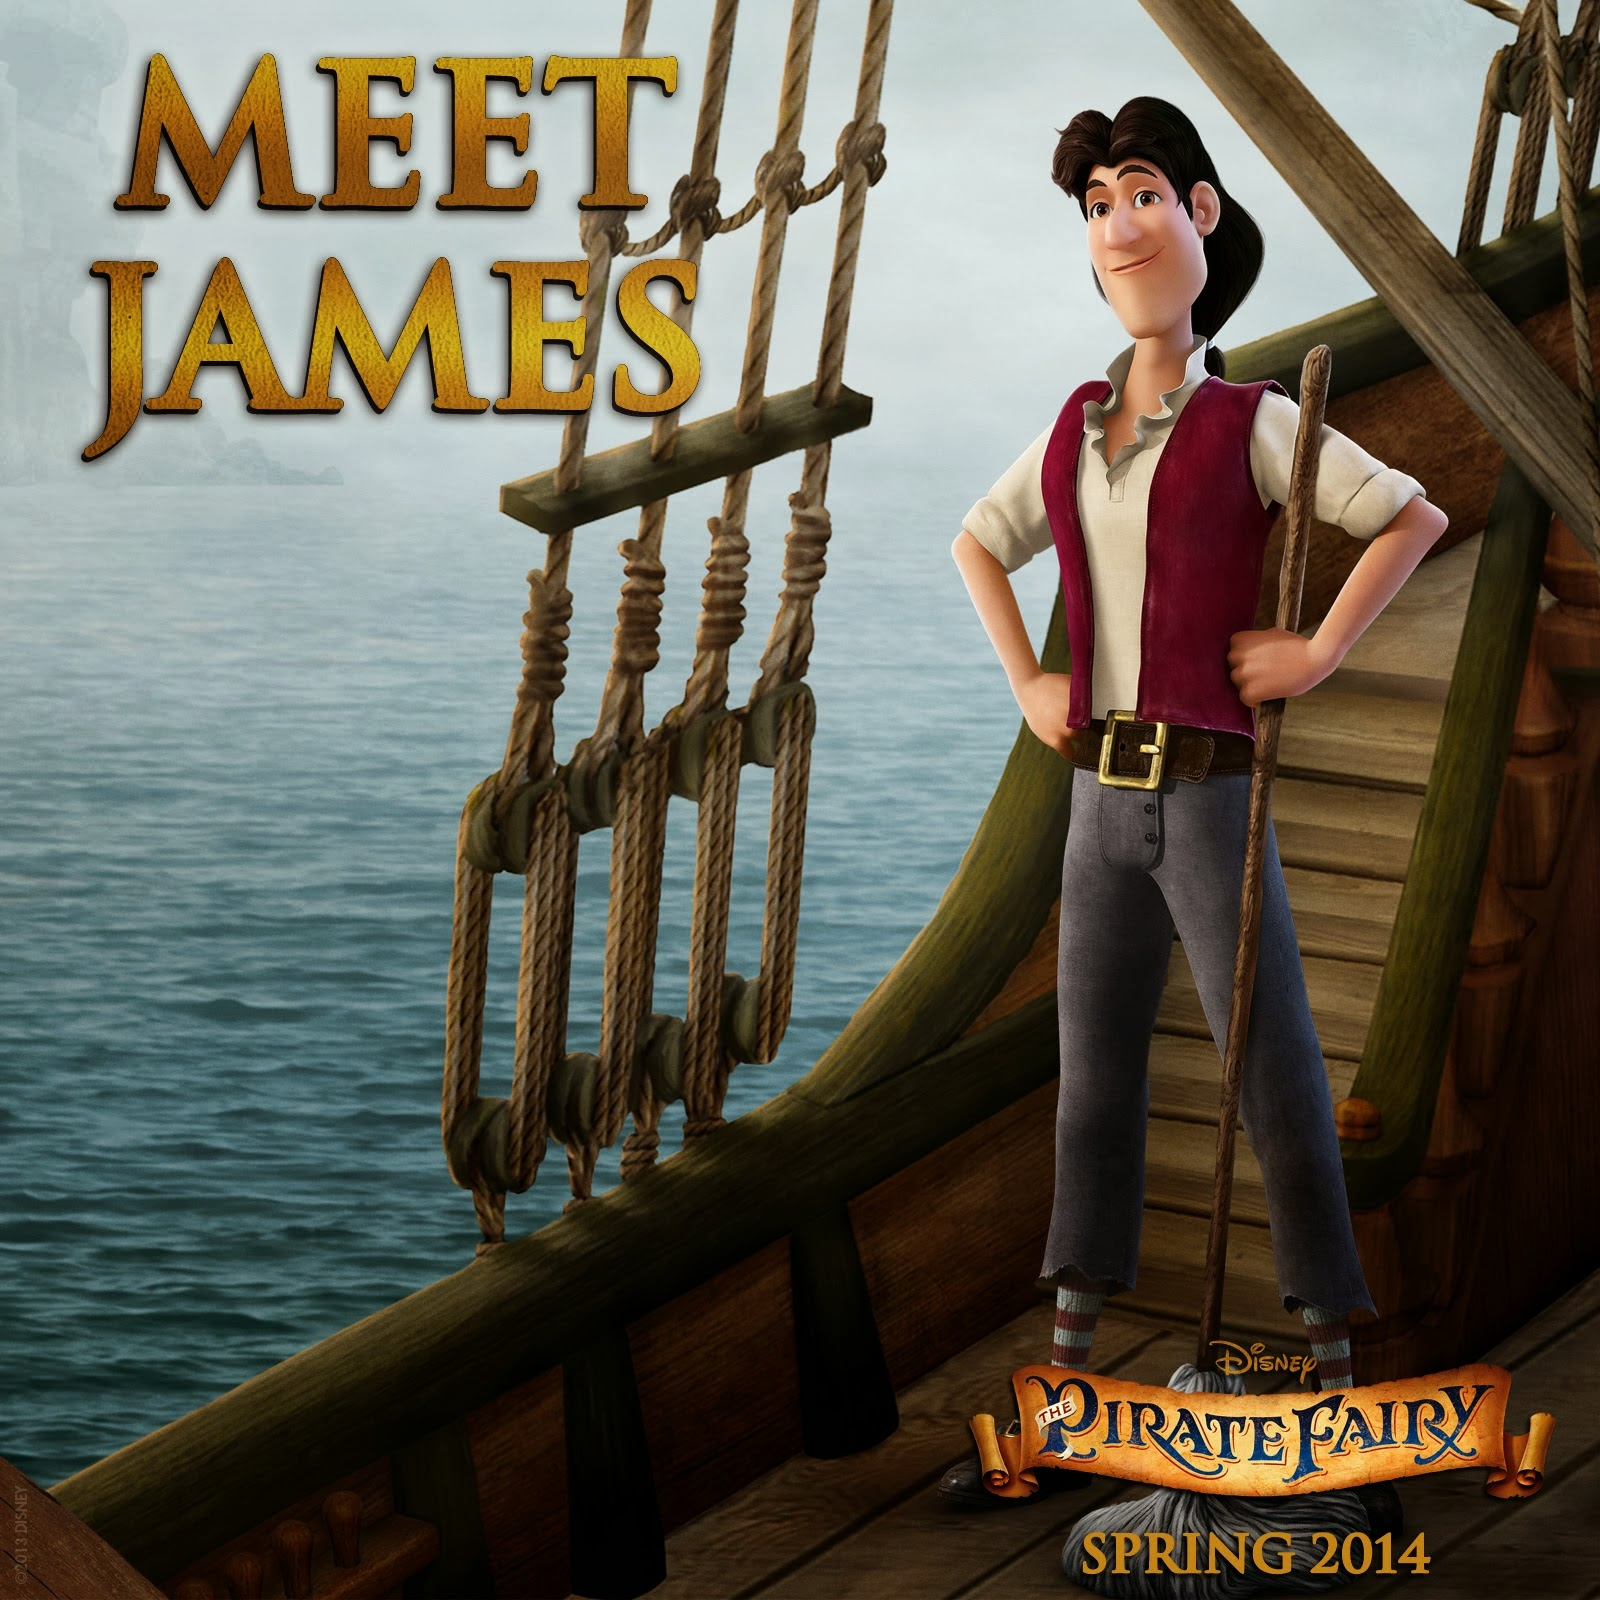 ��� ���� ������ ���� ������� The Pirate Fairy 2016 ����� PF MEET JAMES.jpg